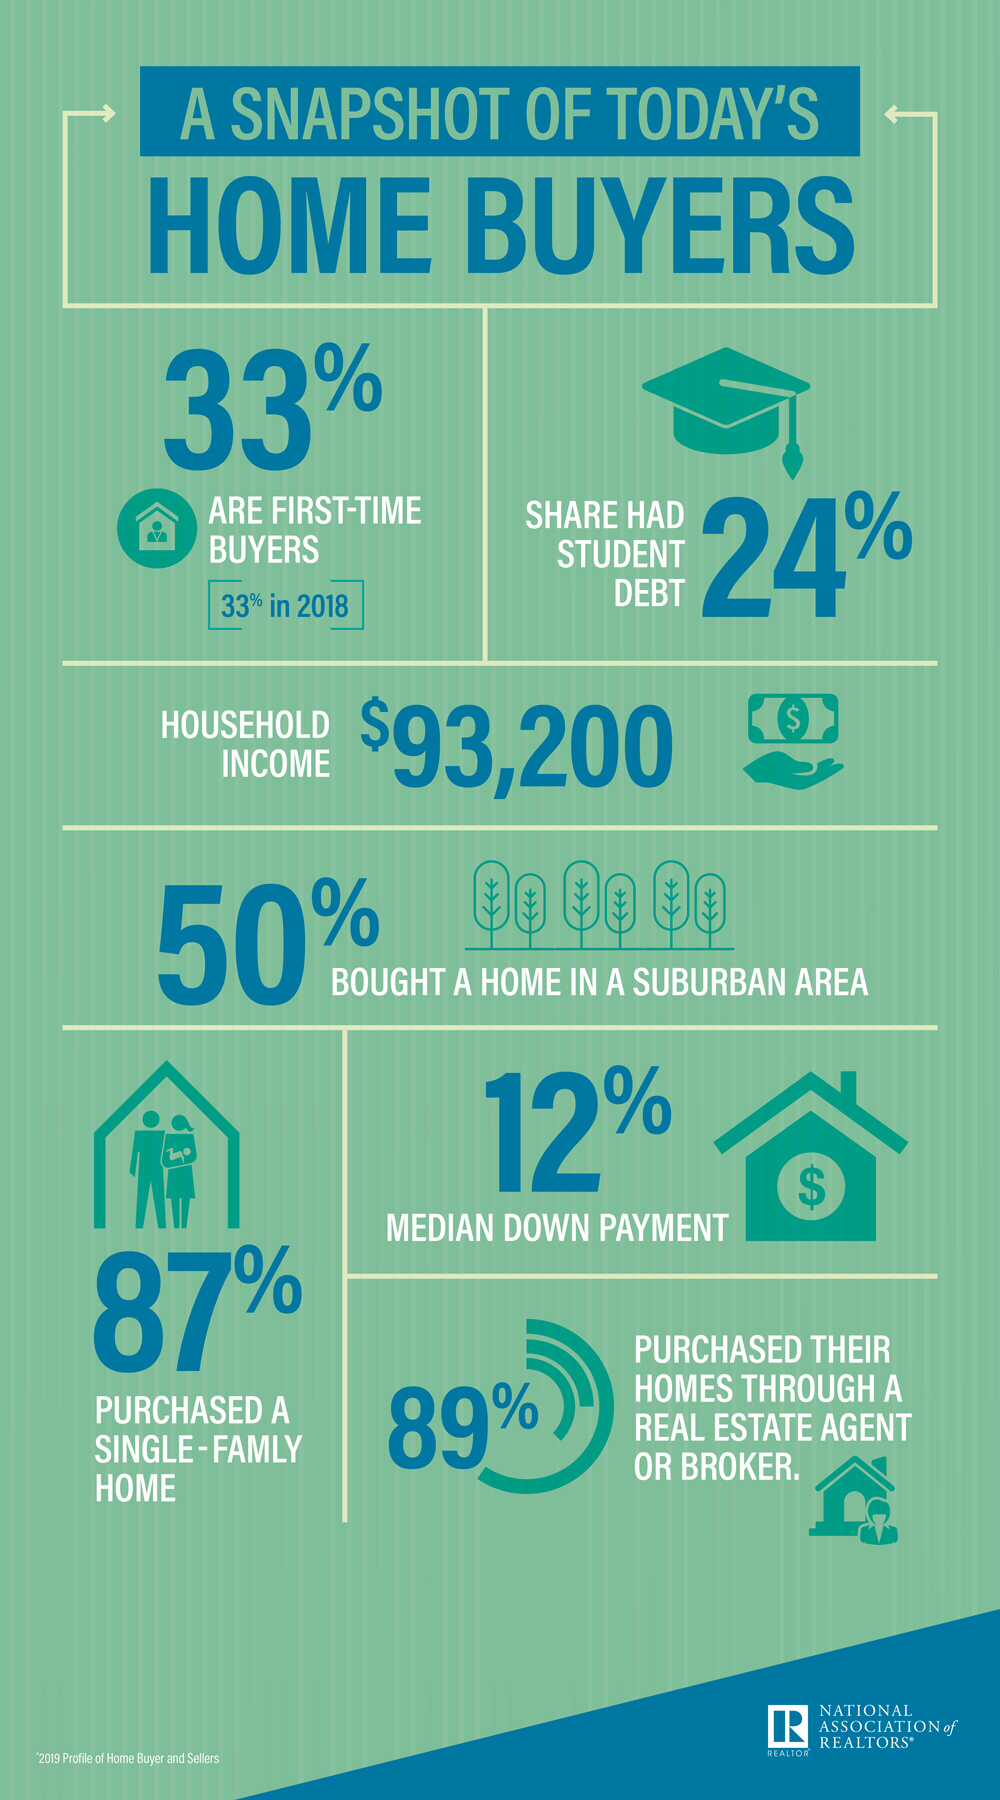 Home Buyer infographic. Visit source link at the end of this article for more information.